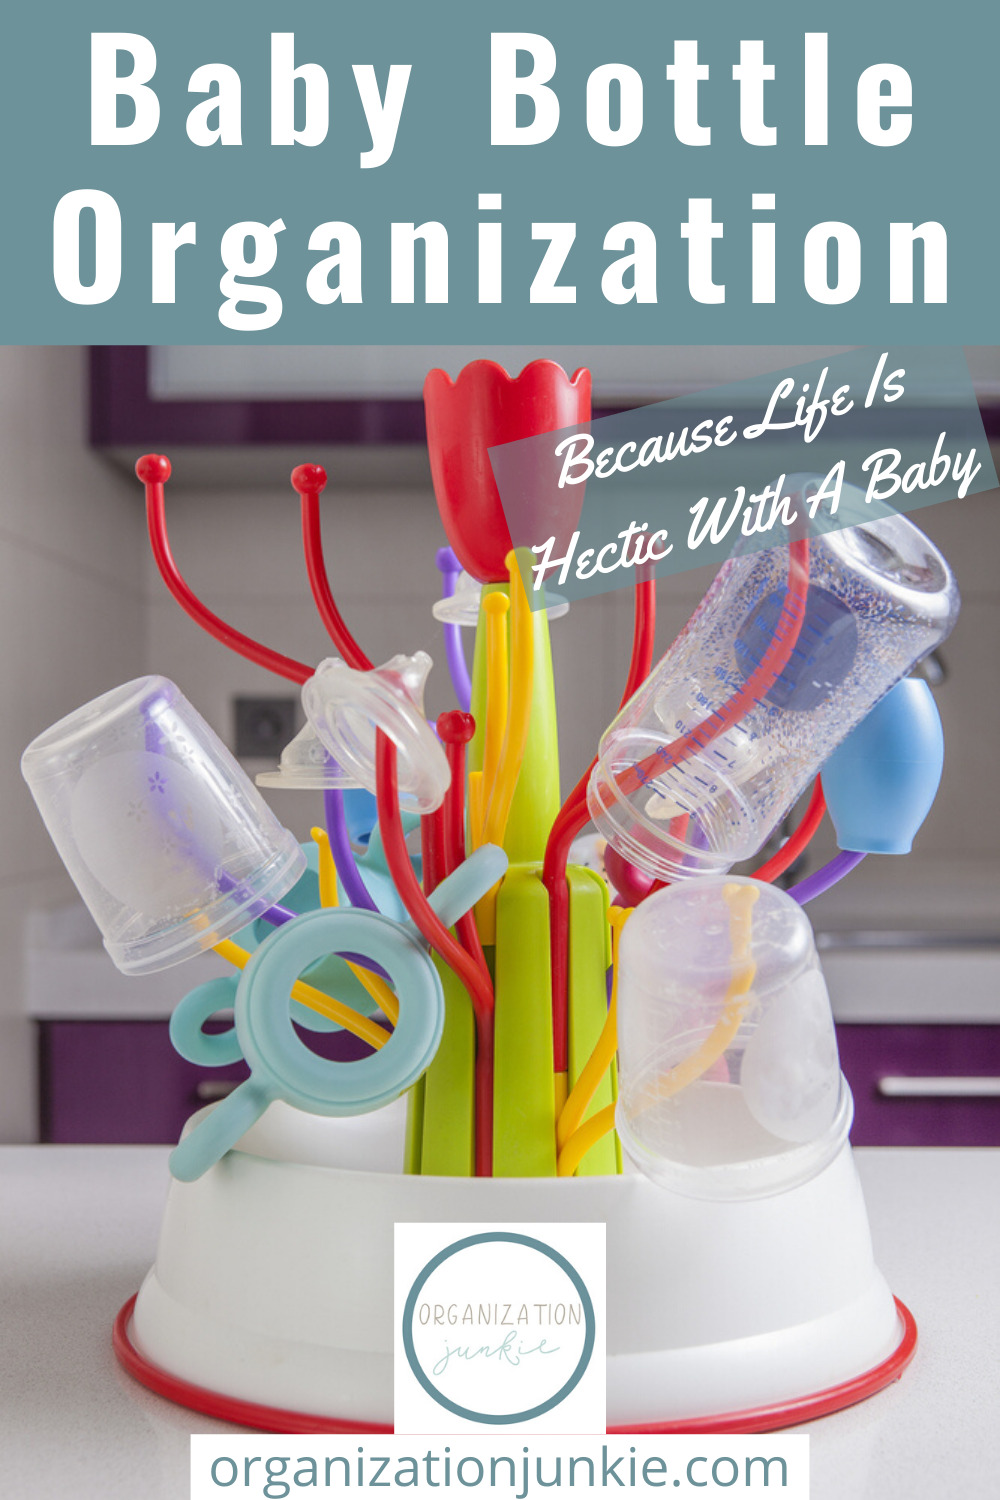 Baby bottle organization ideas for every Mom! Baby bottles easily take over your kitchen if you let them. Instead, learn about 8 products to help you take control of the baby bottles once and for all! #organizationjunkieblog #babybottleorganization